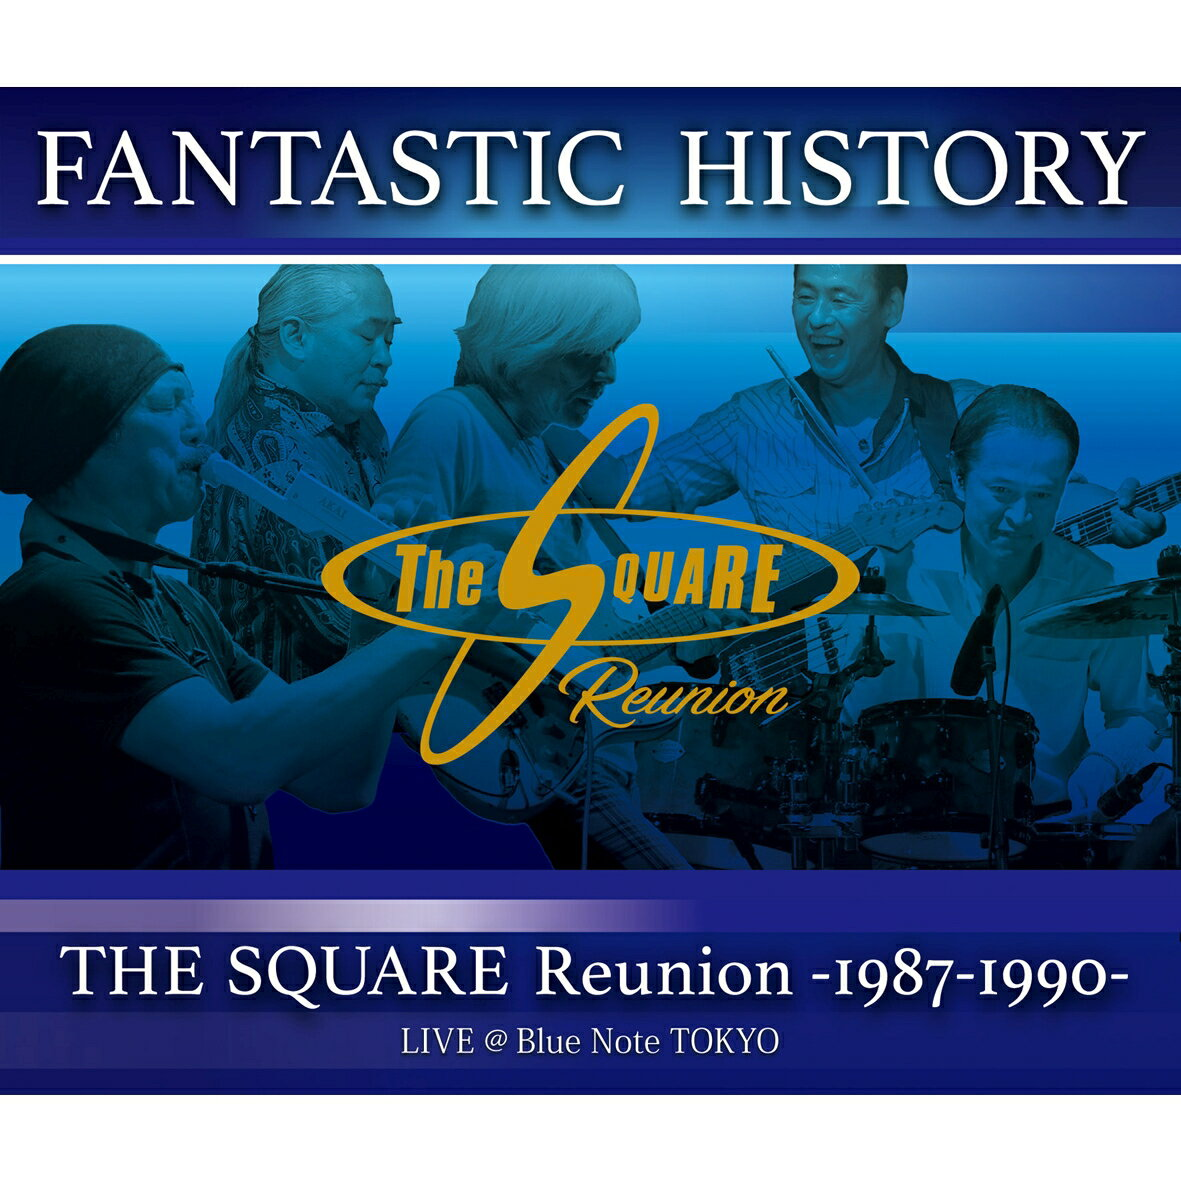 """""""FANTASTIC HISTORY"""" / THE SQUARE Reunion -1987-1990- LIVE @Blue Note TOKYO【Blu-ray】 [ THE SQUARE Reunion ]"""